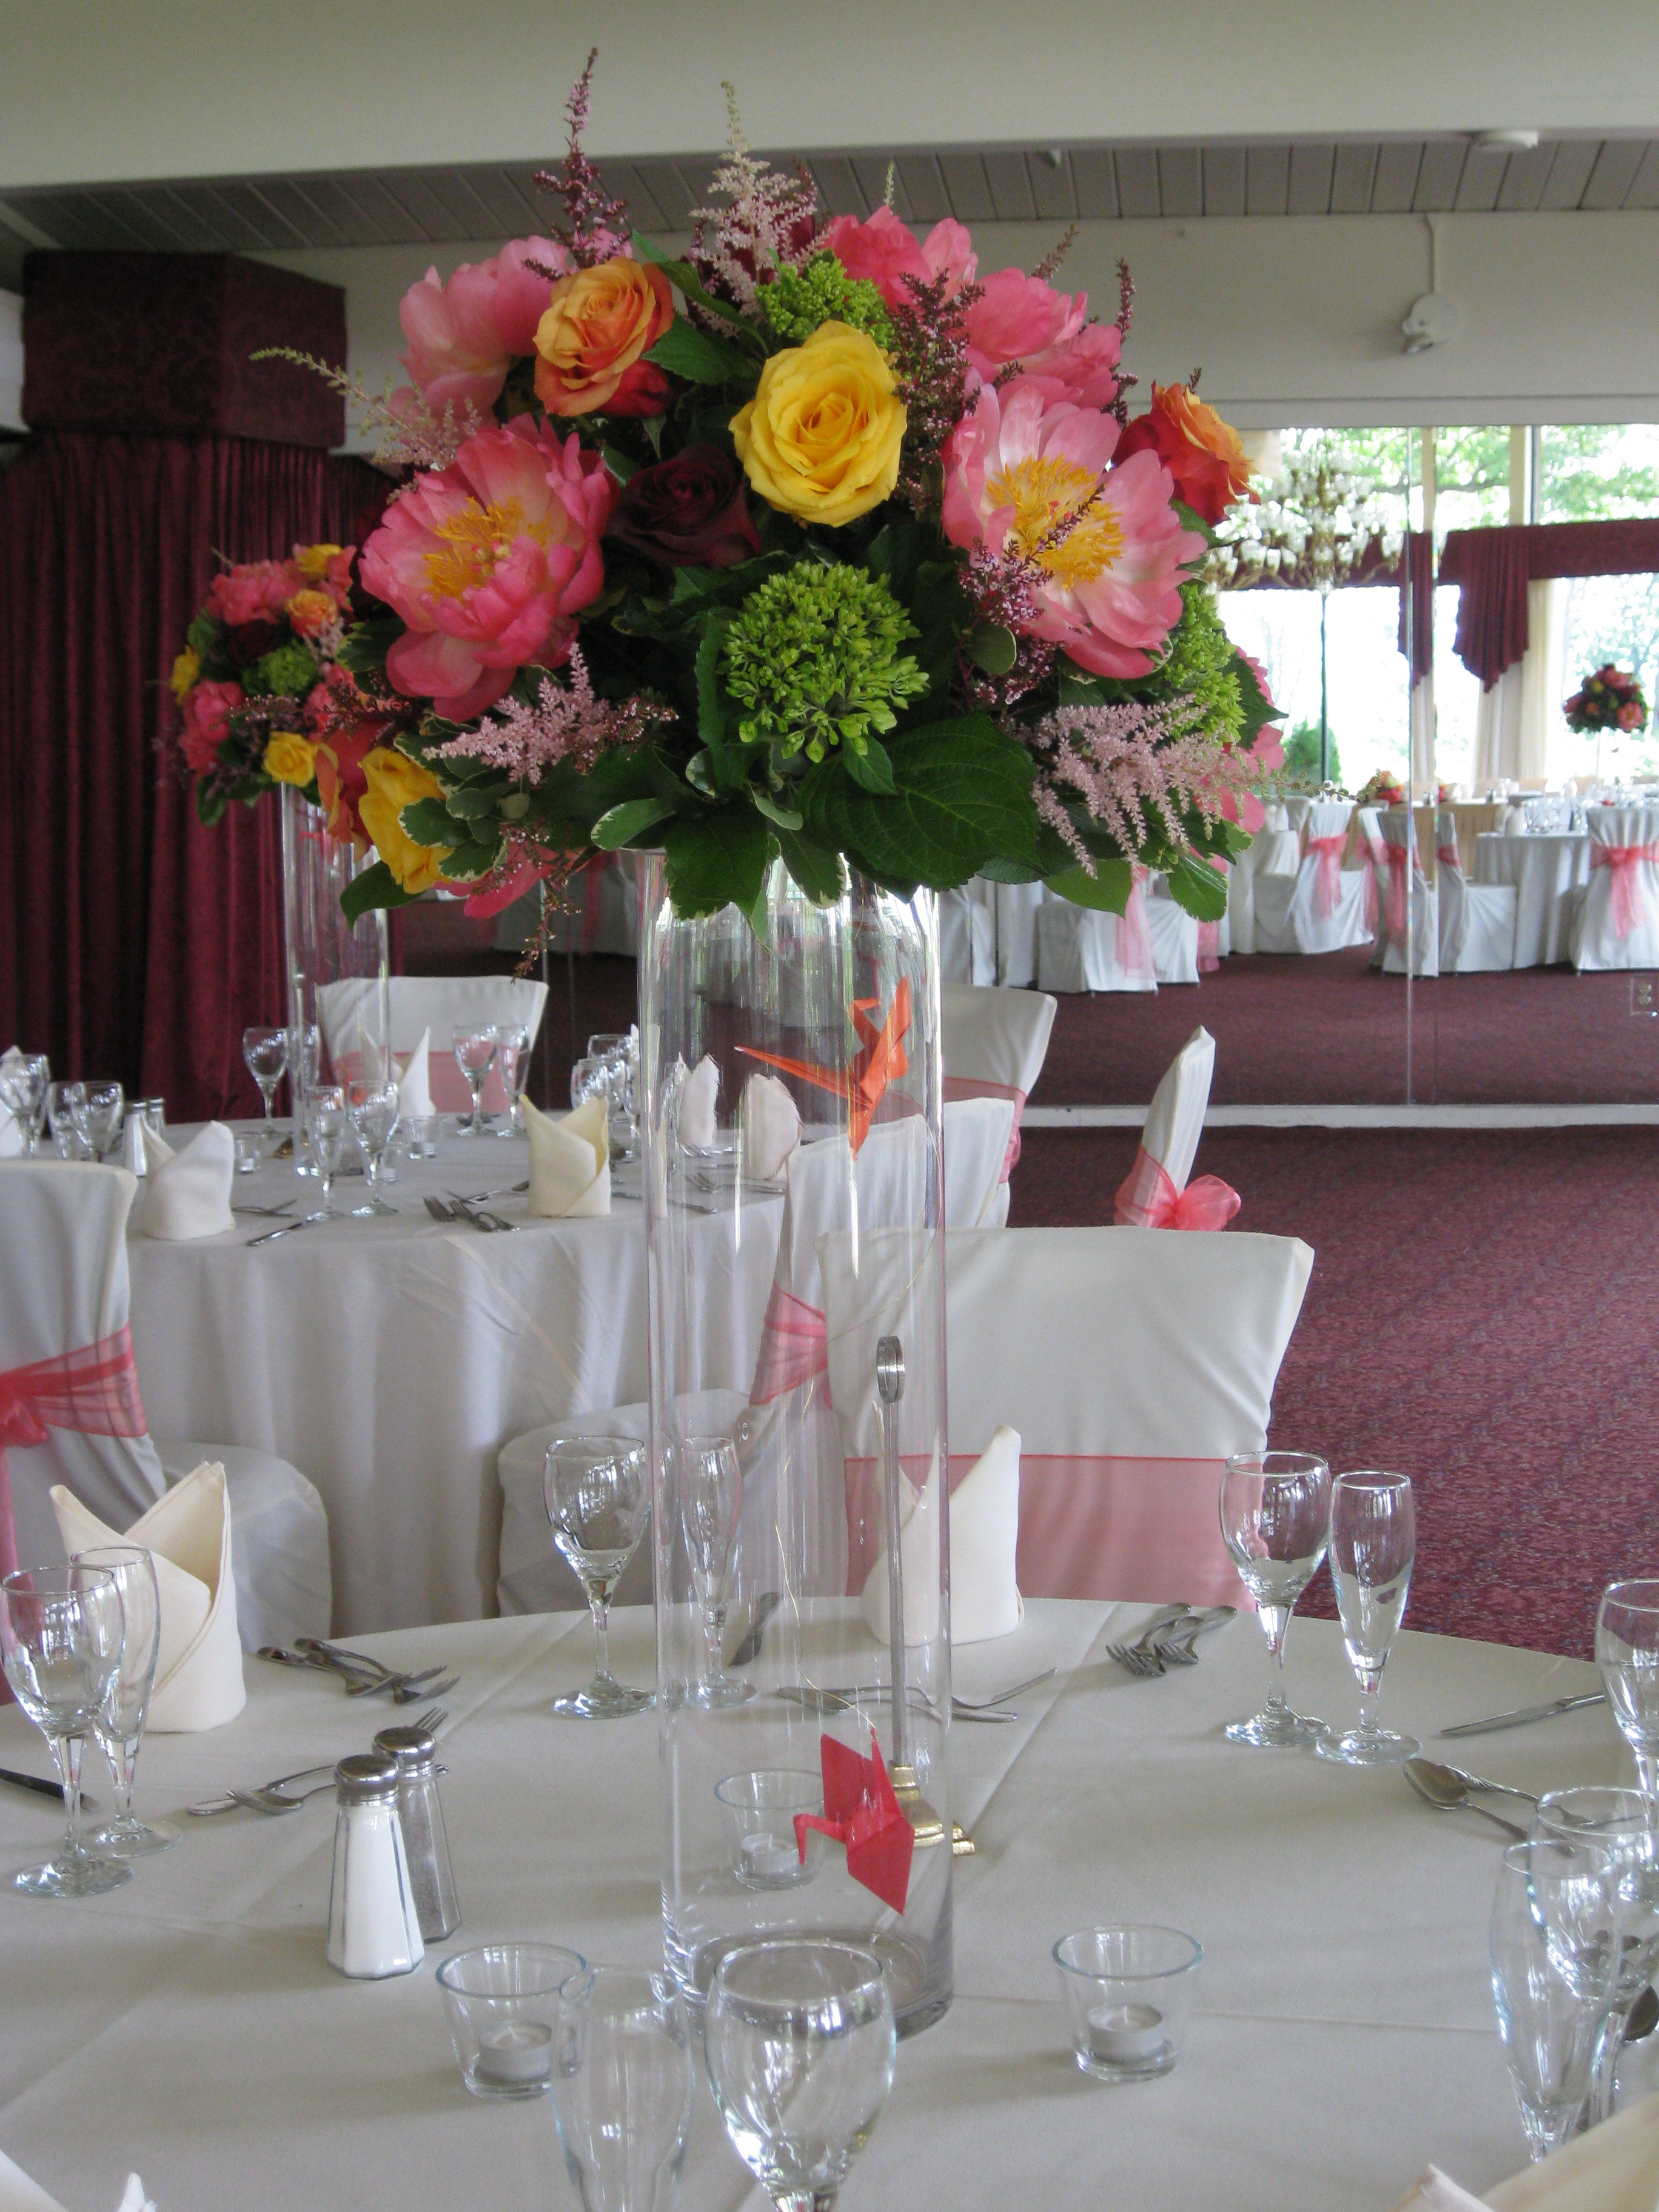 29 Great Wedding Centerpiece Vases for Sale 2021 free download wedding centerpiece vases for sale of flower vases for centerpieces vase and cellar image avorcor com for wedding flower vases images flowers in gl vase and